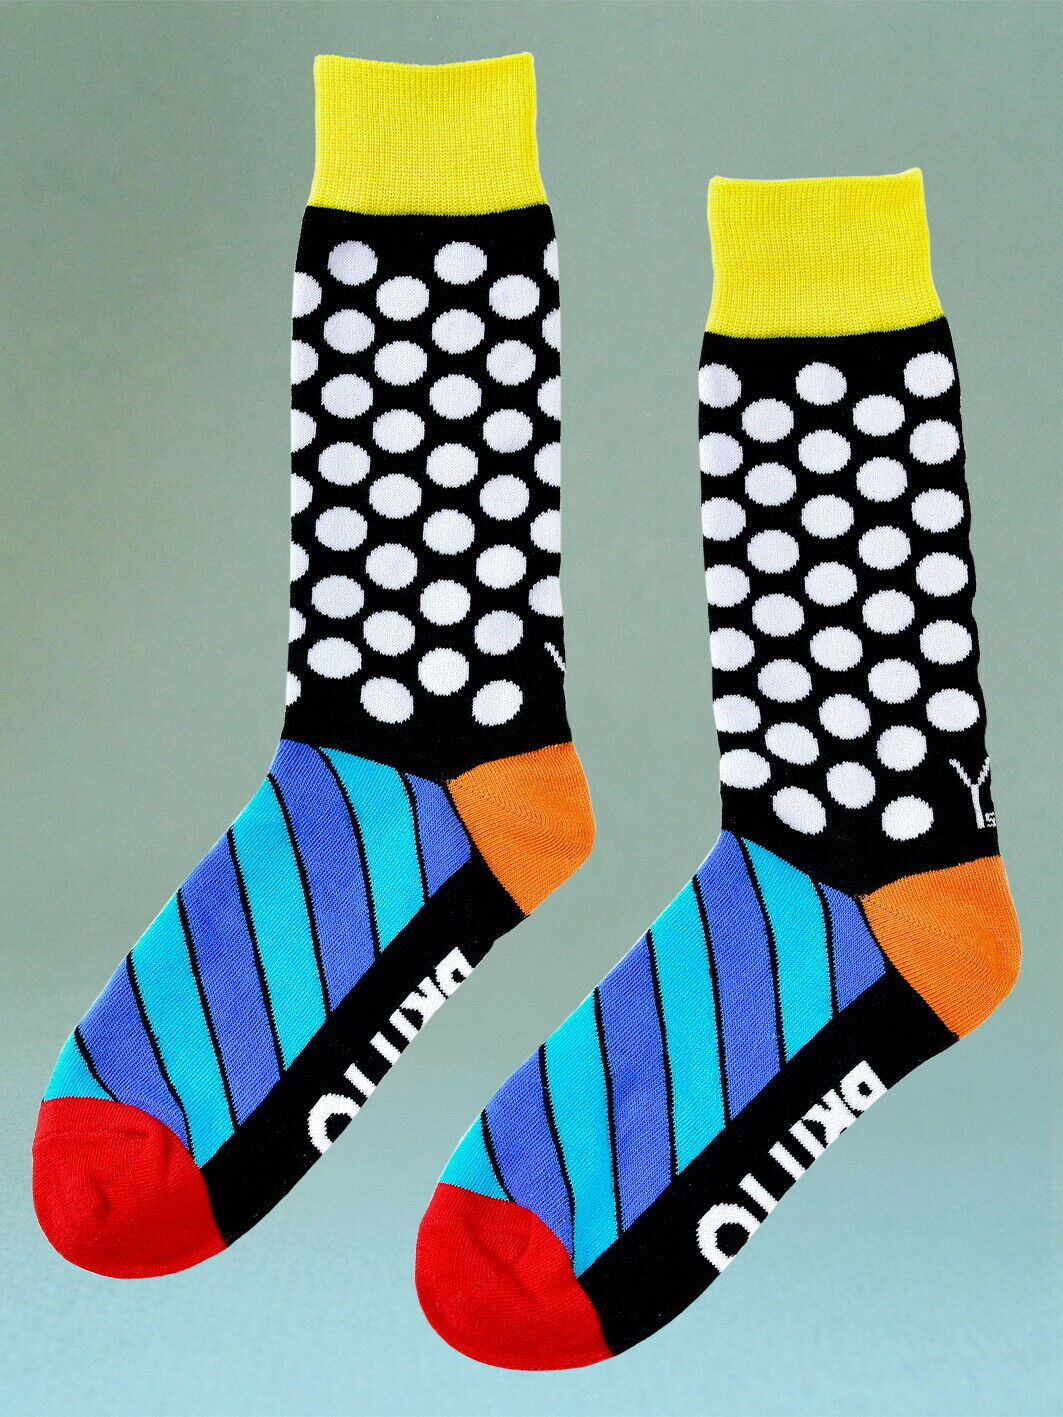 "Stylische Herrensocken ""Dots - Punkte"" - ROMERO BRITTO Miami Pop Art Size 7-12"